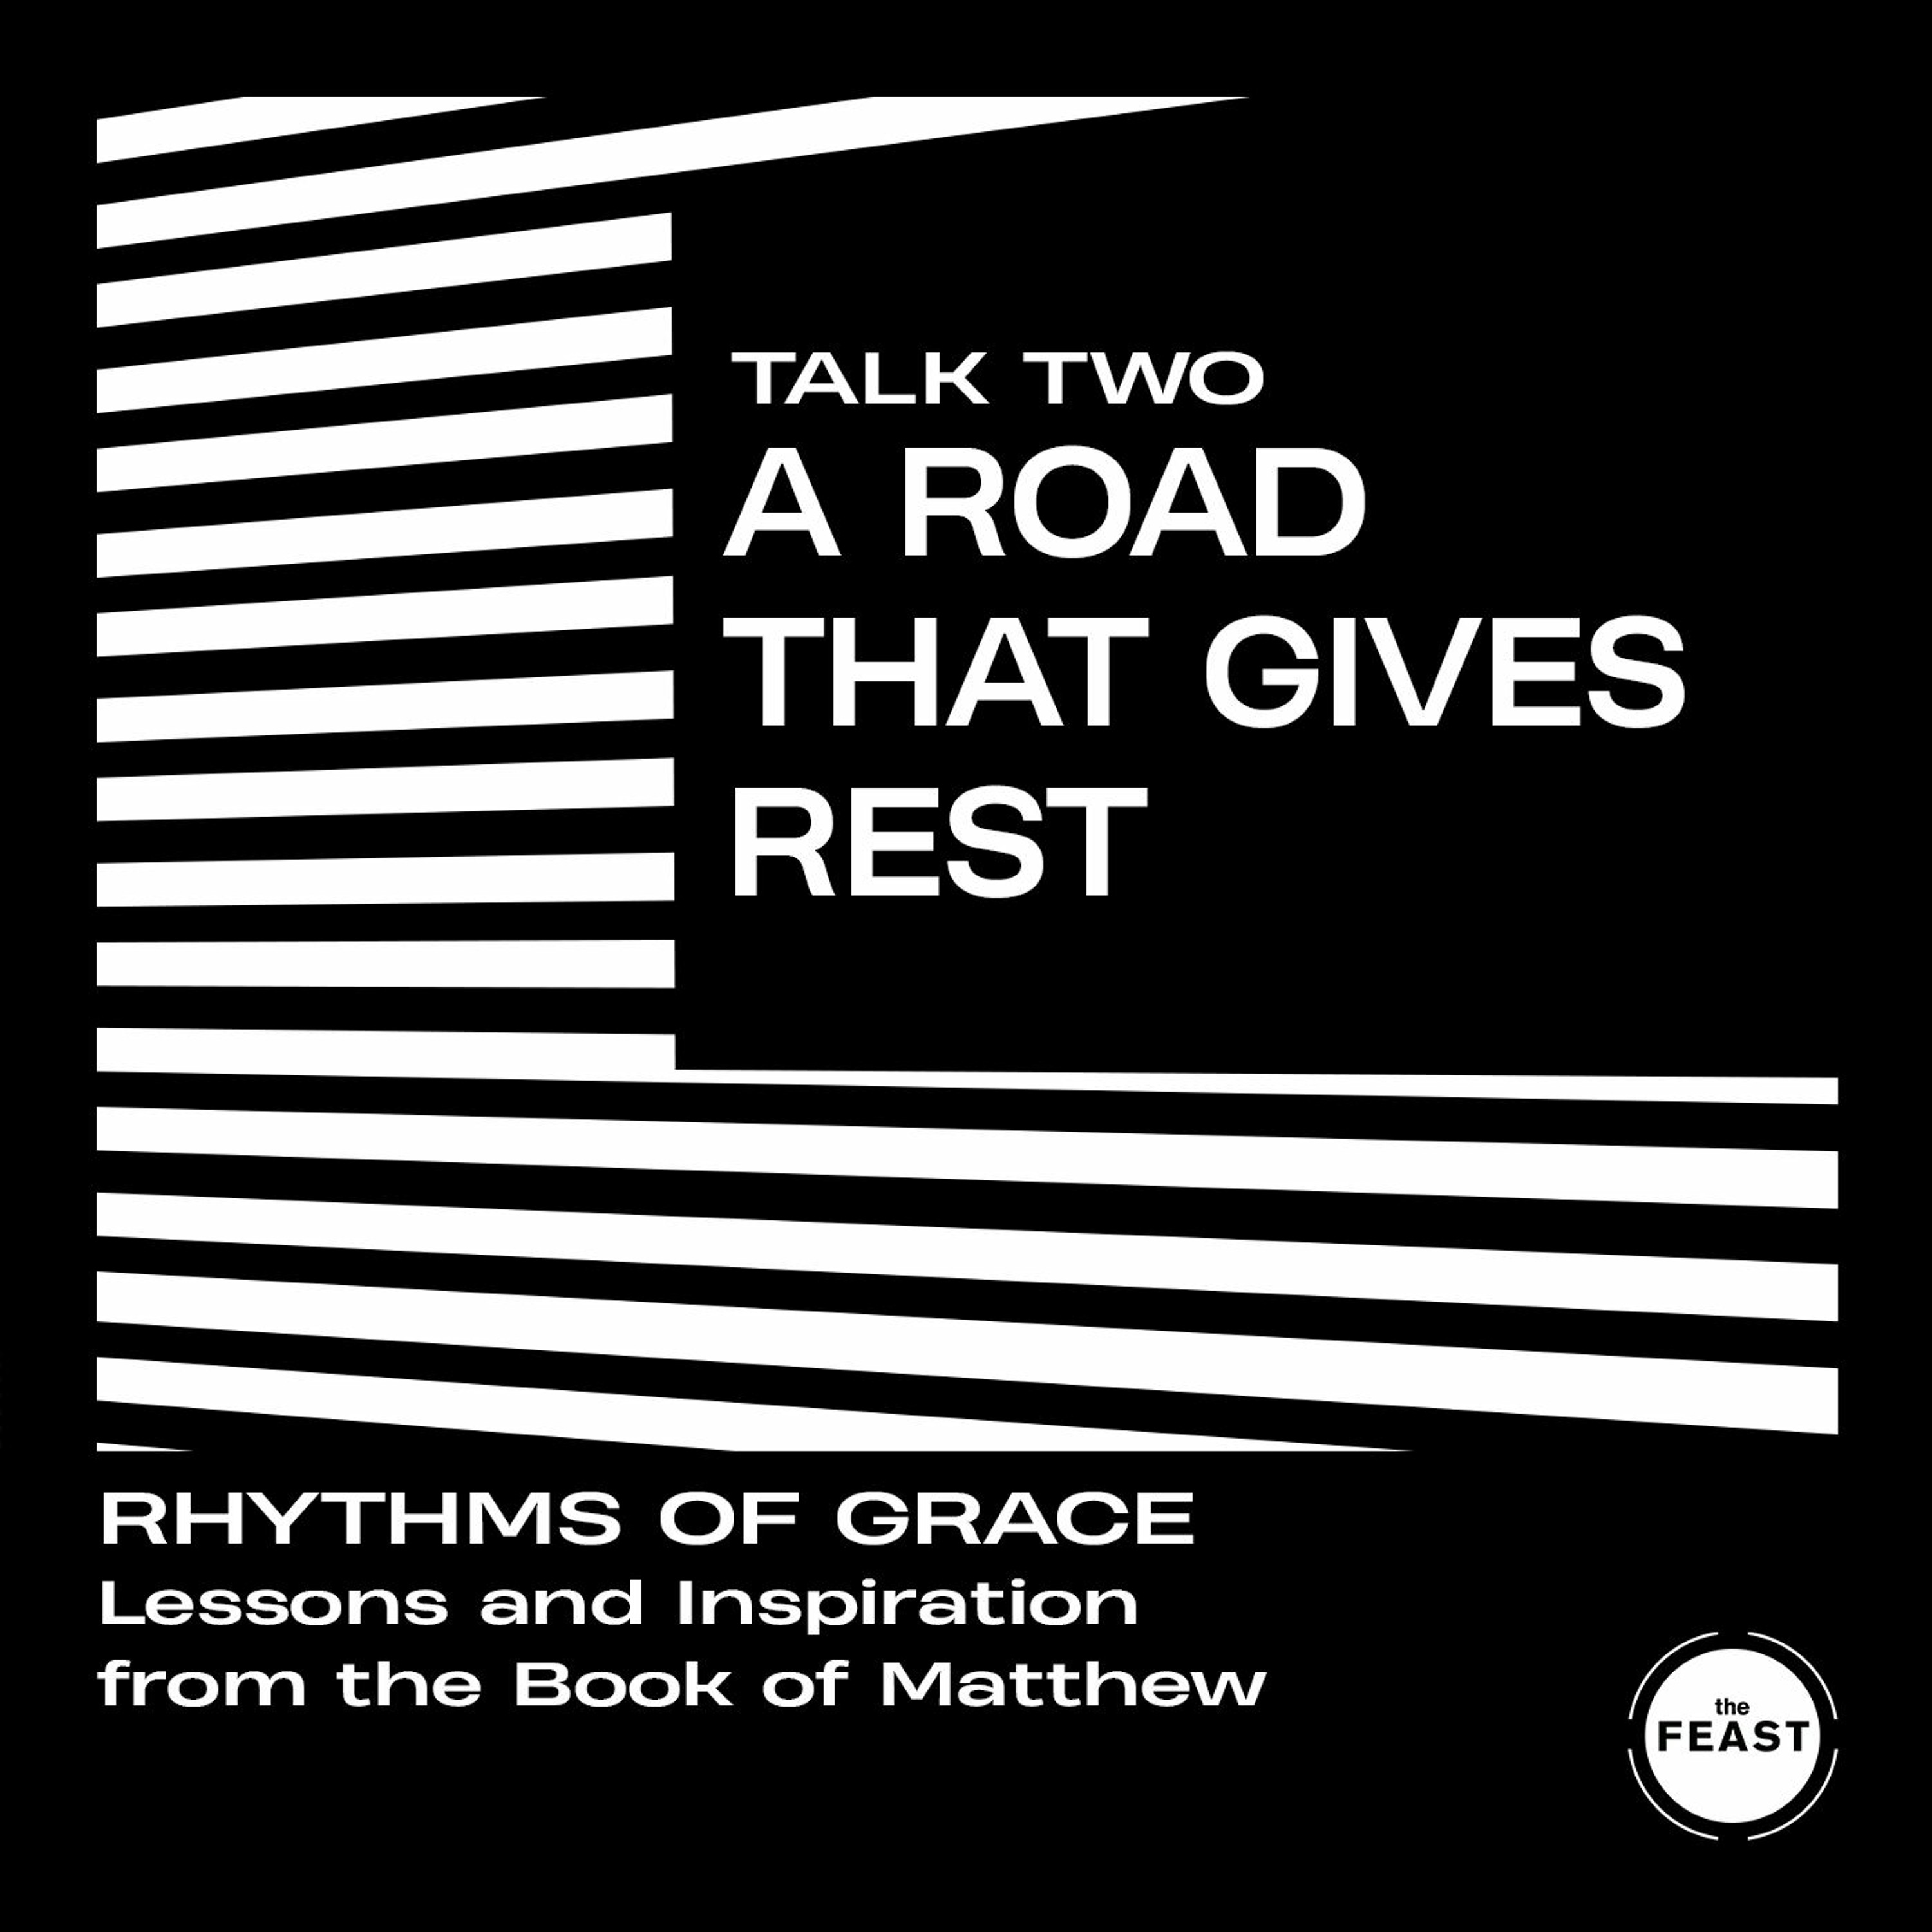 Rhythms of Grace Talk 2: A Road That Gives Rest